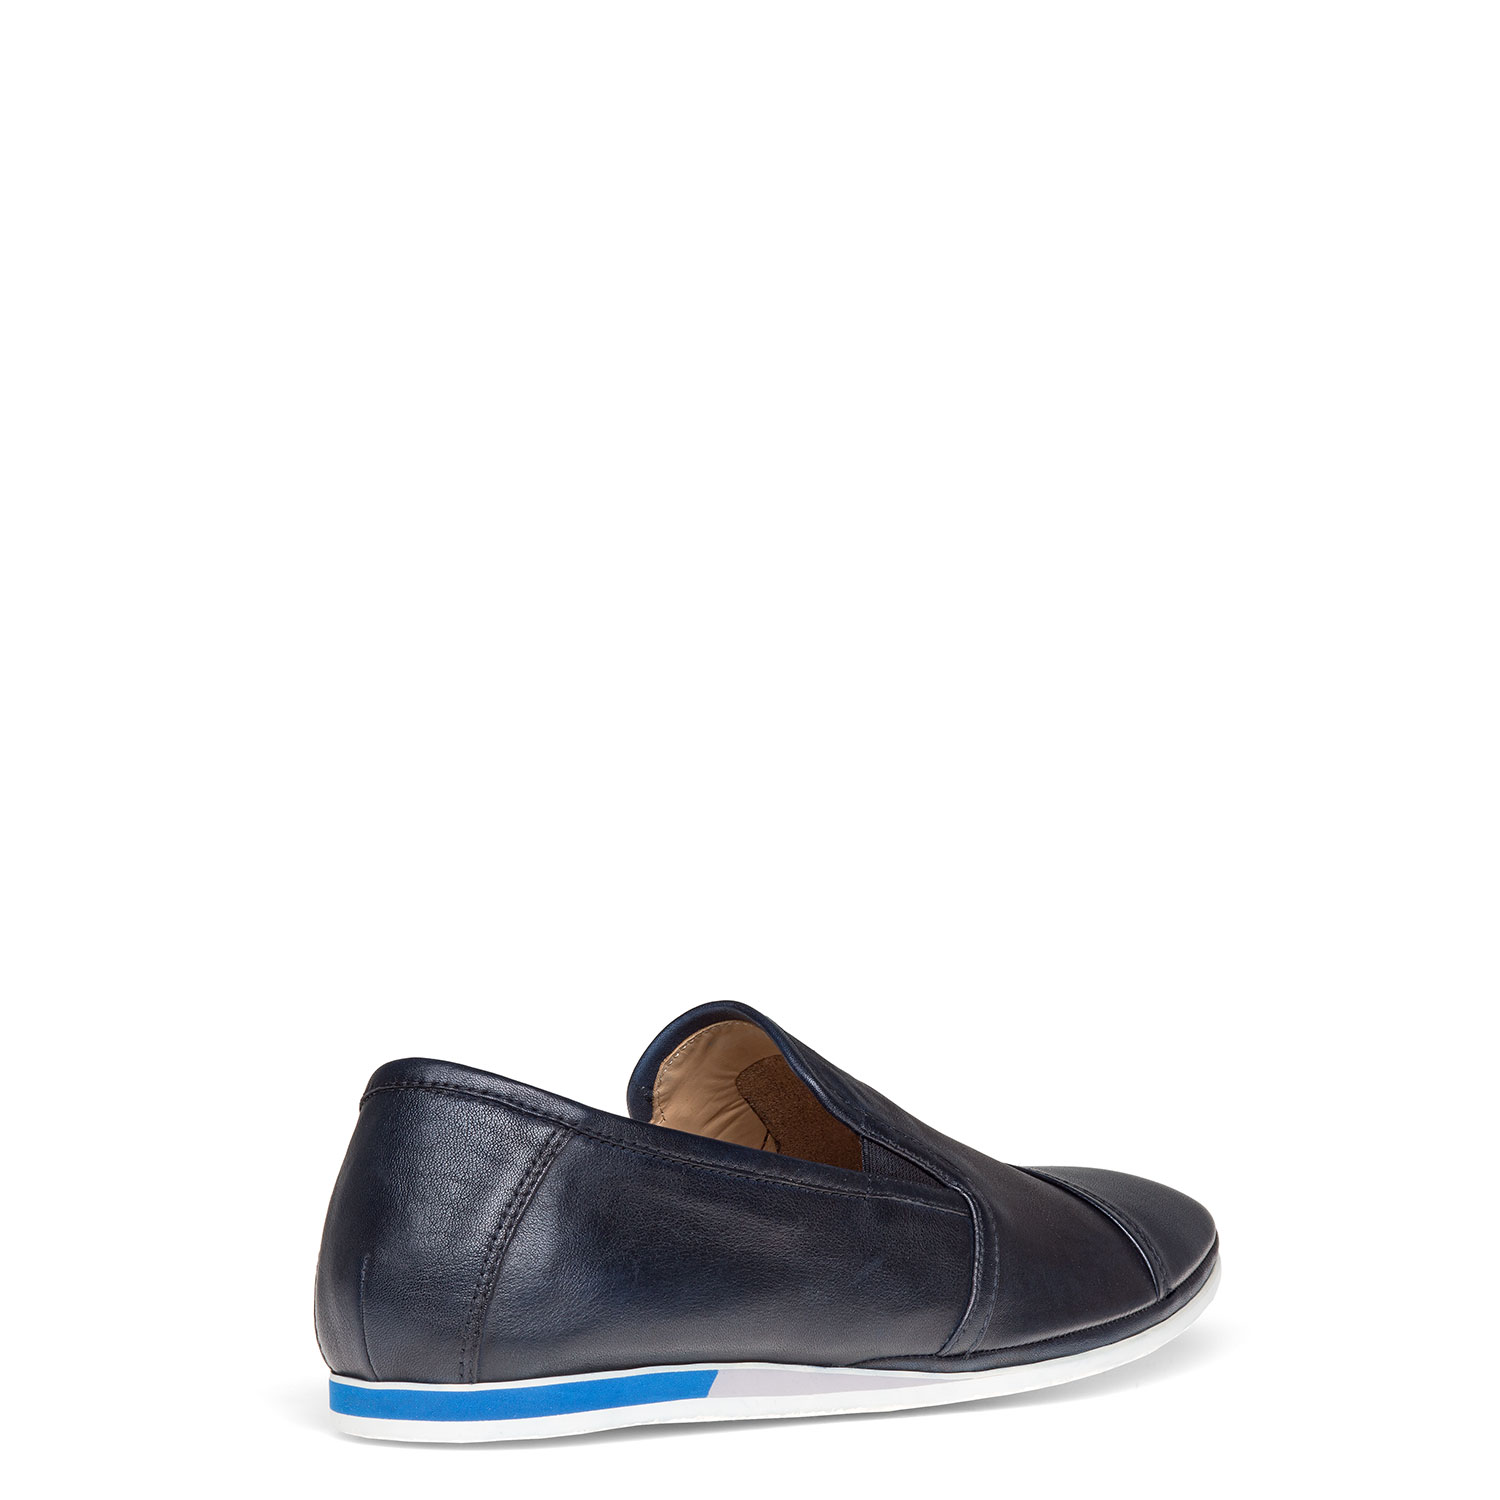 Men's shoes CARLO PAZOLINI HM-JUU2-6